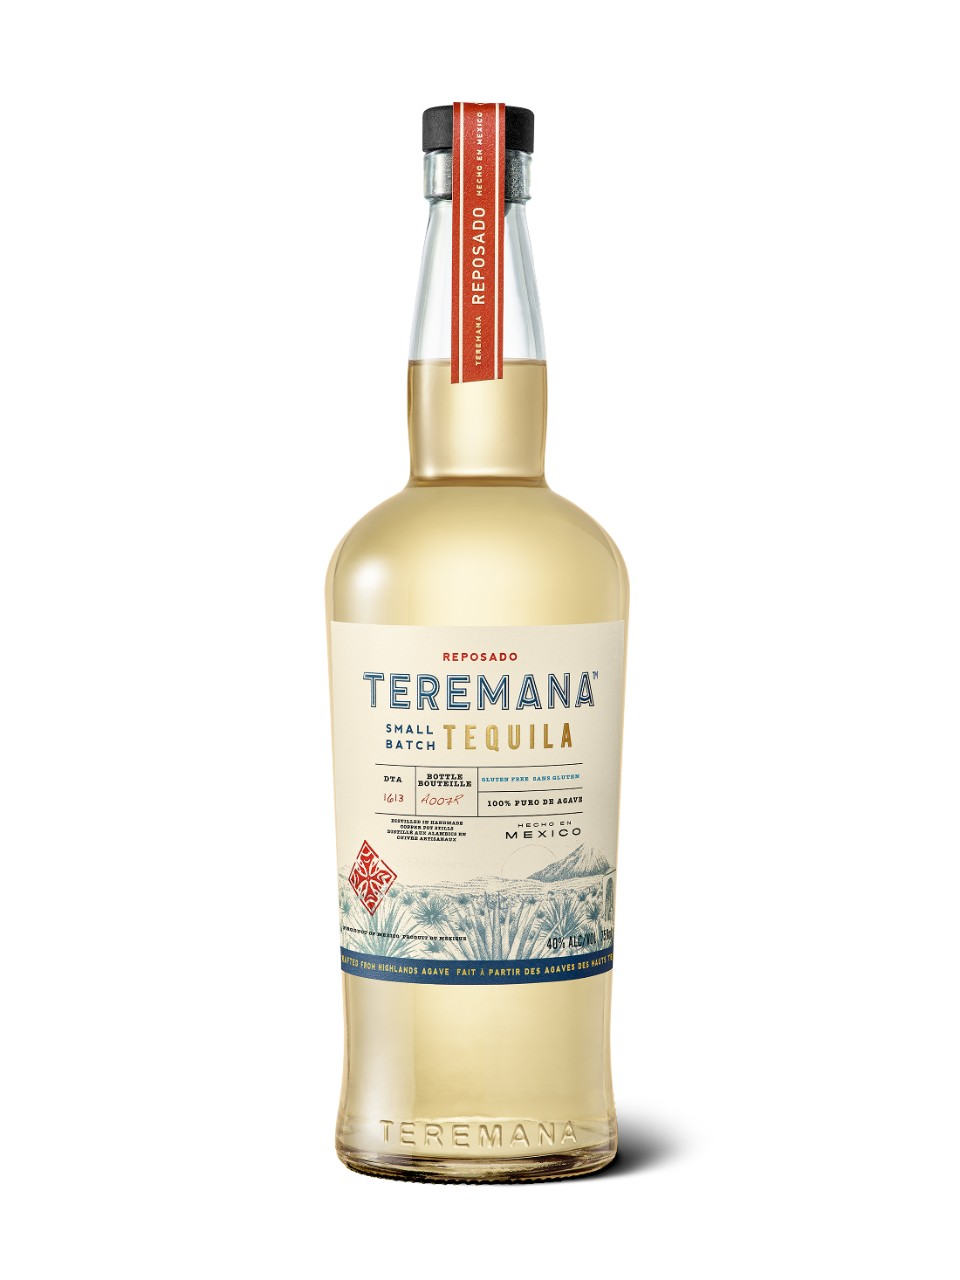 Teremana Reposado Tequila from LCBO